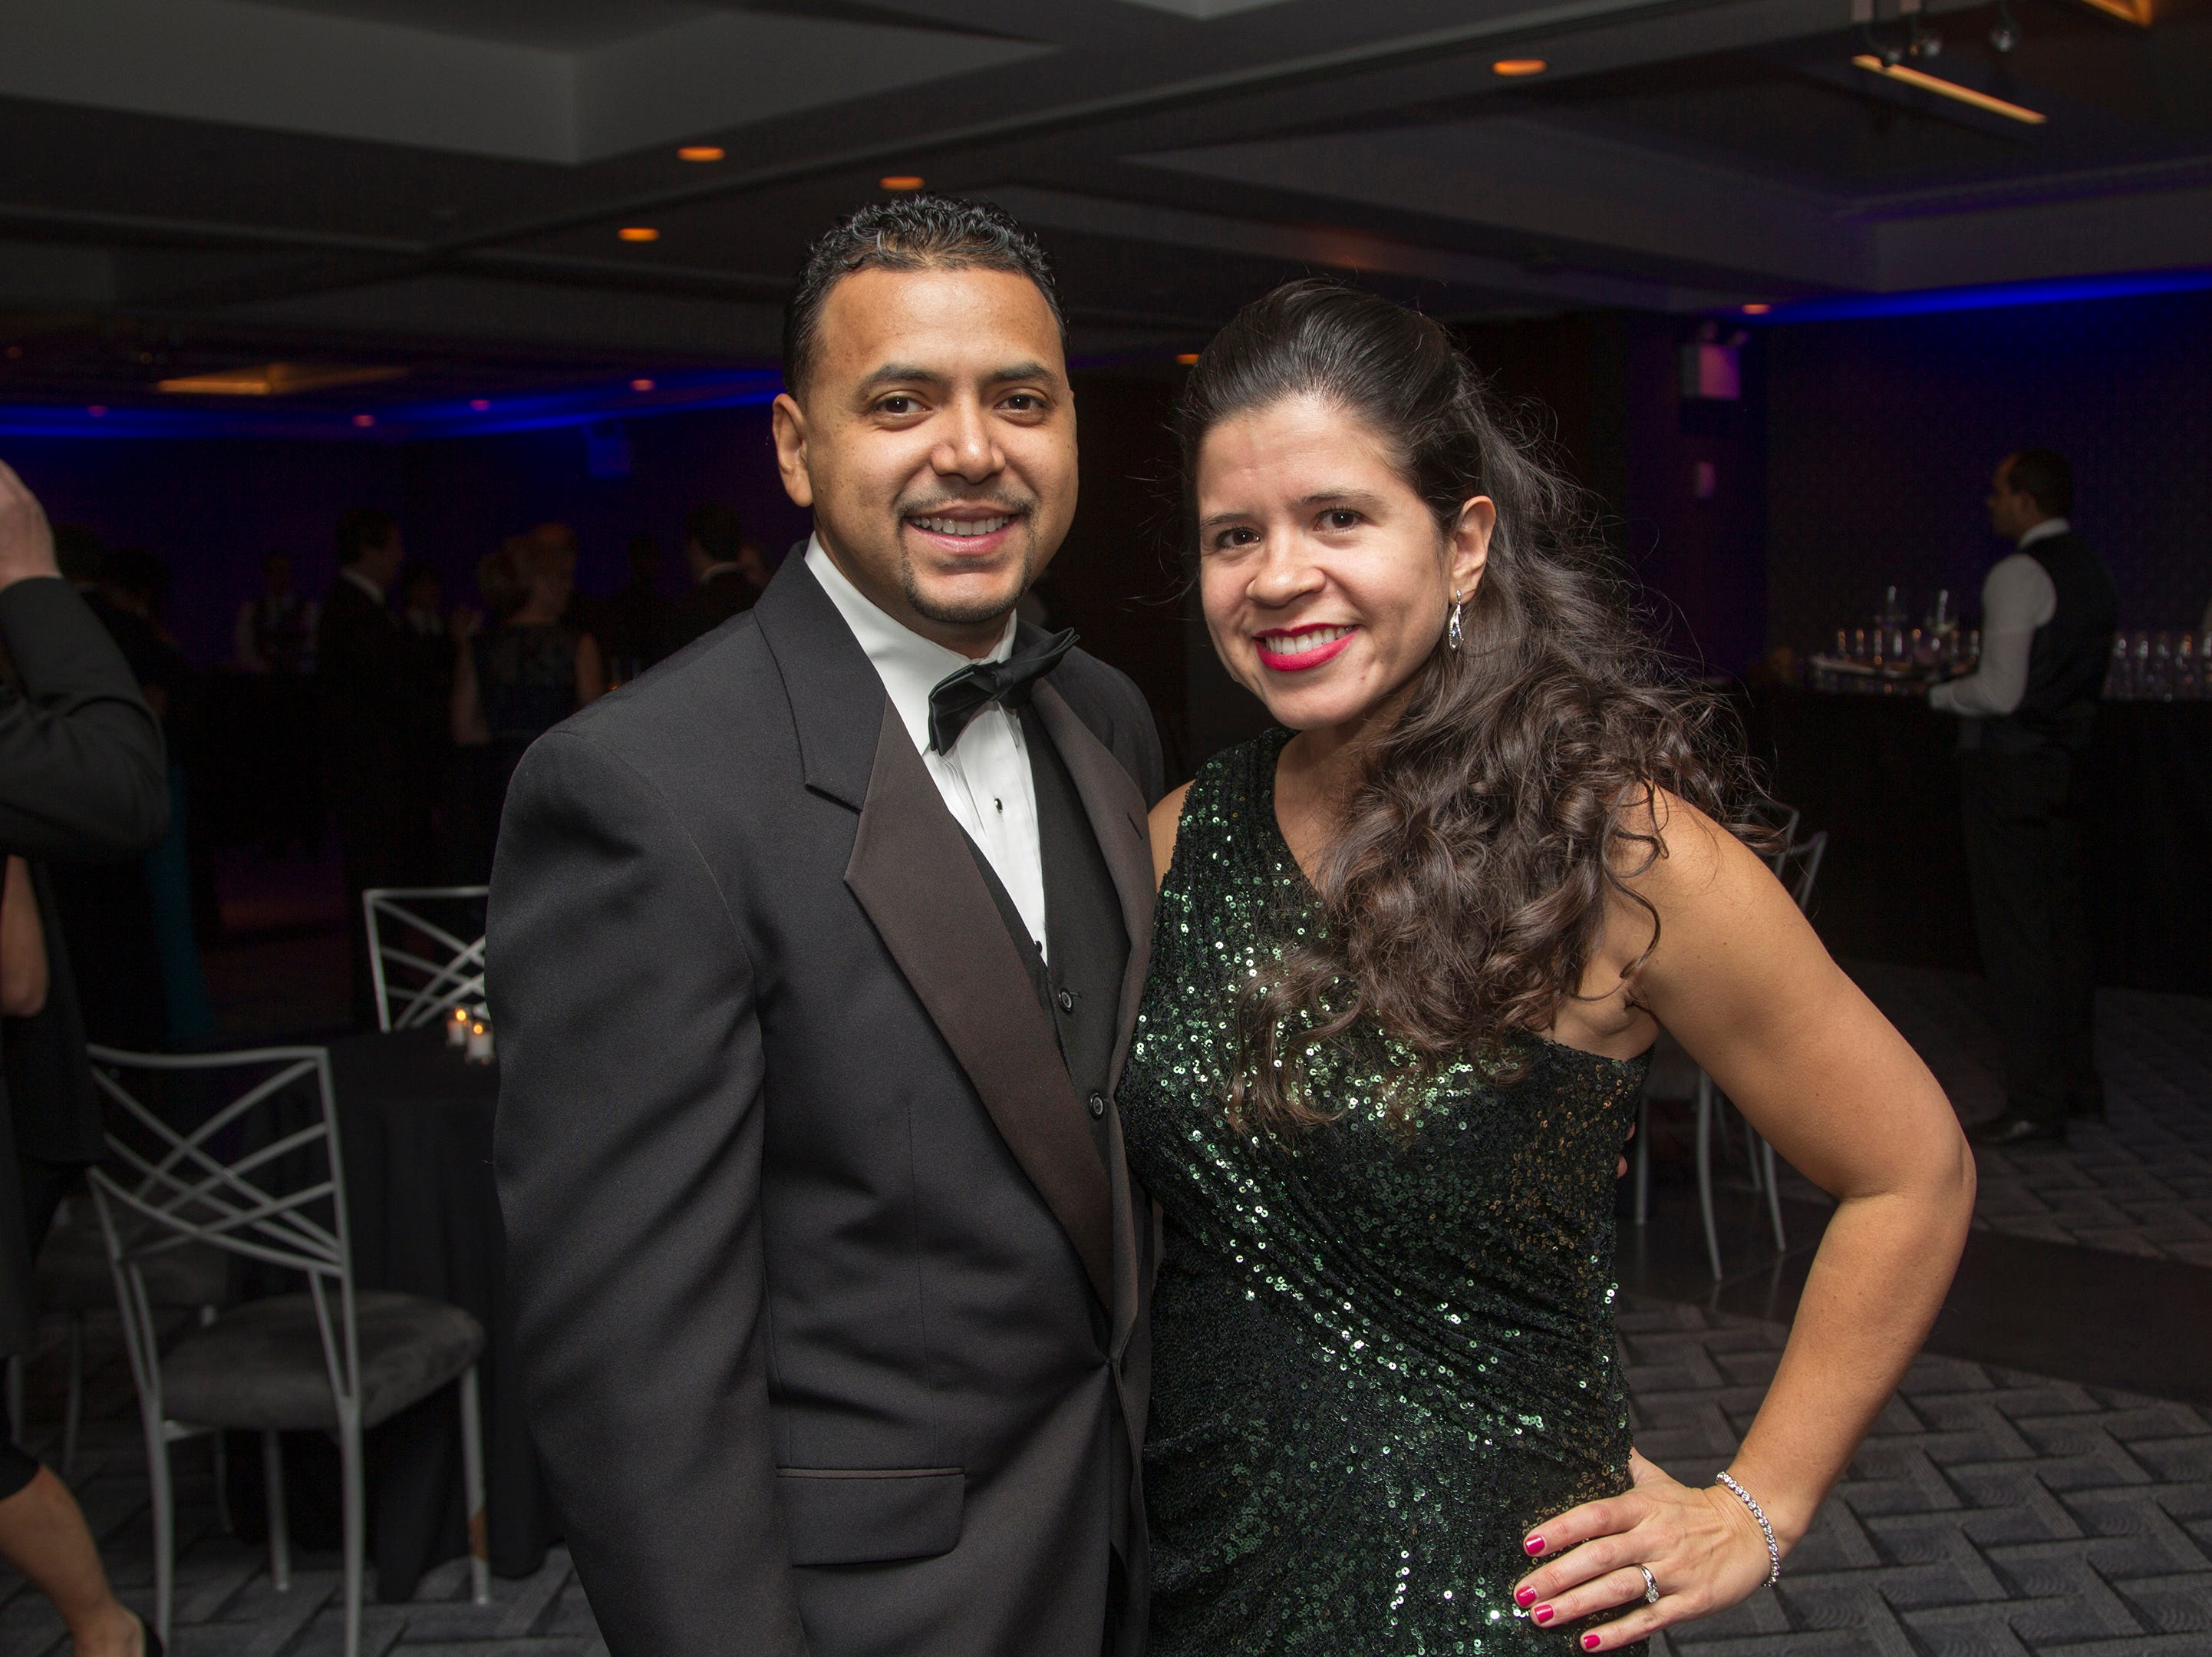 Jason and Michelle Diaz. Holy Name Medical Center held its 2018 Founders Ball in NYC at Ziegfeld Ballroom. 11/17/2018